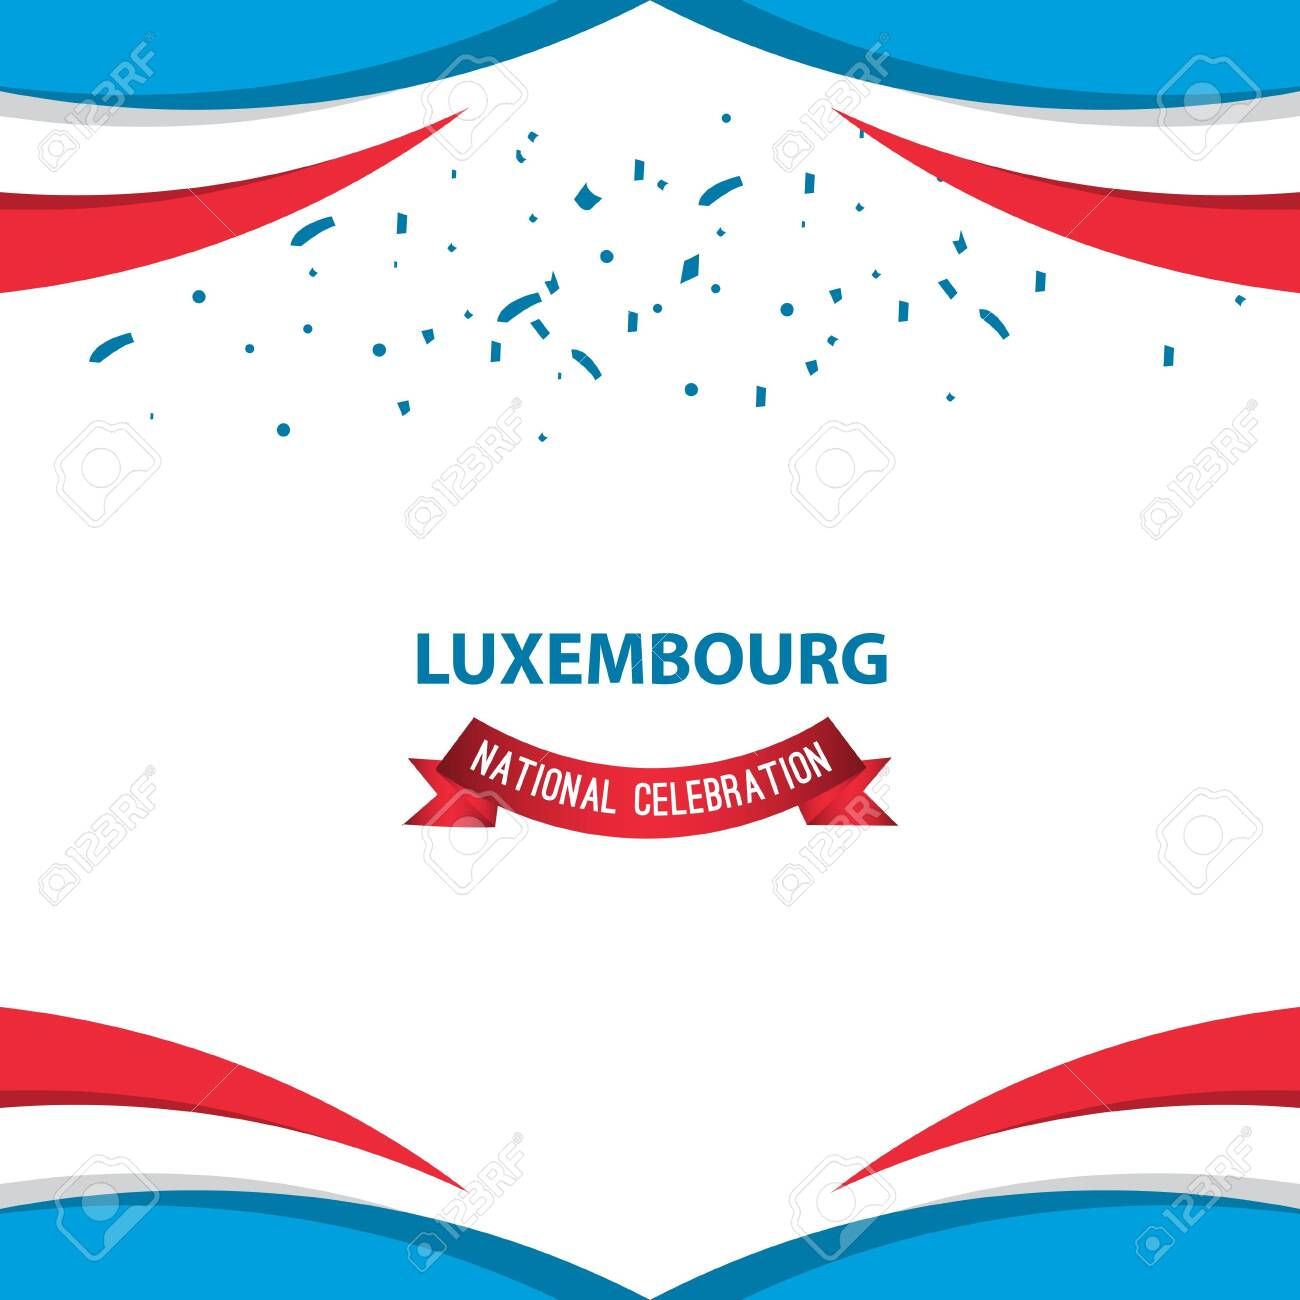 Luxembourg National Celebration Poster Vector Template Design Illustration - 137047833